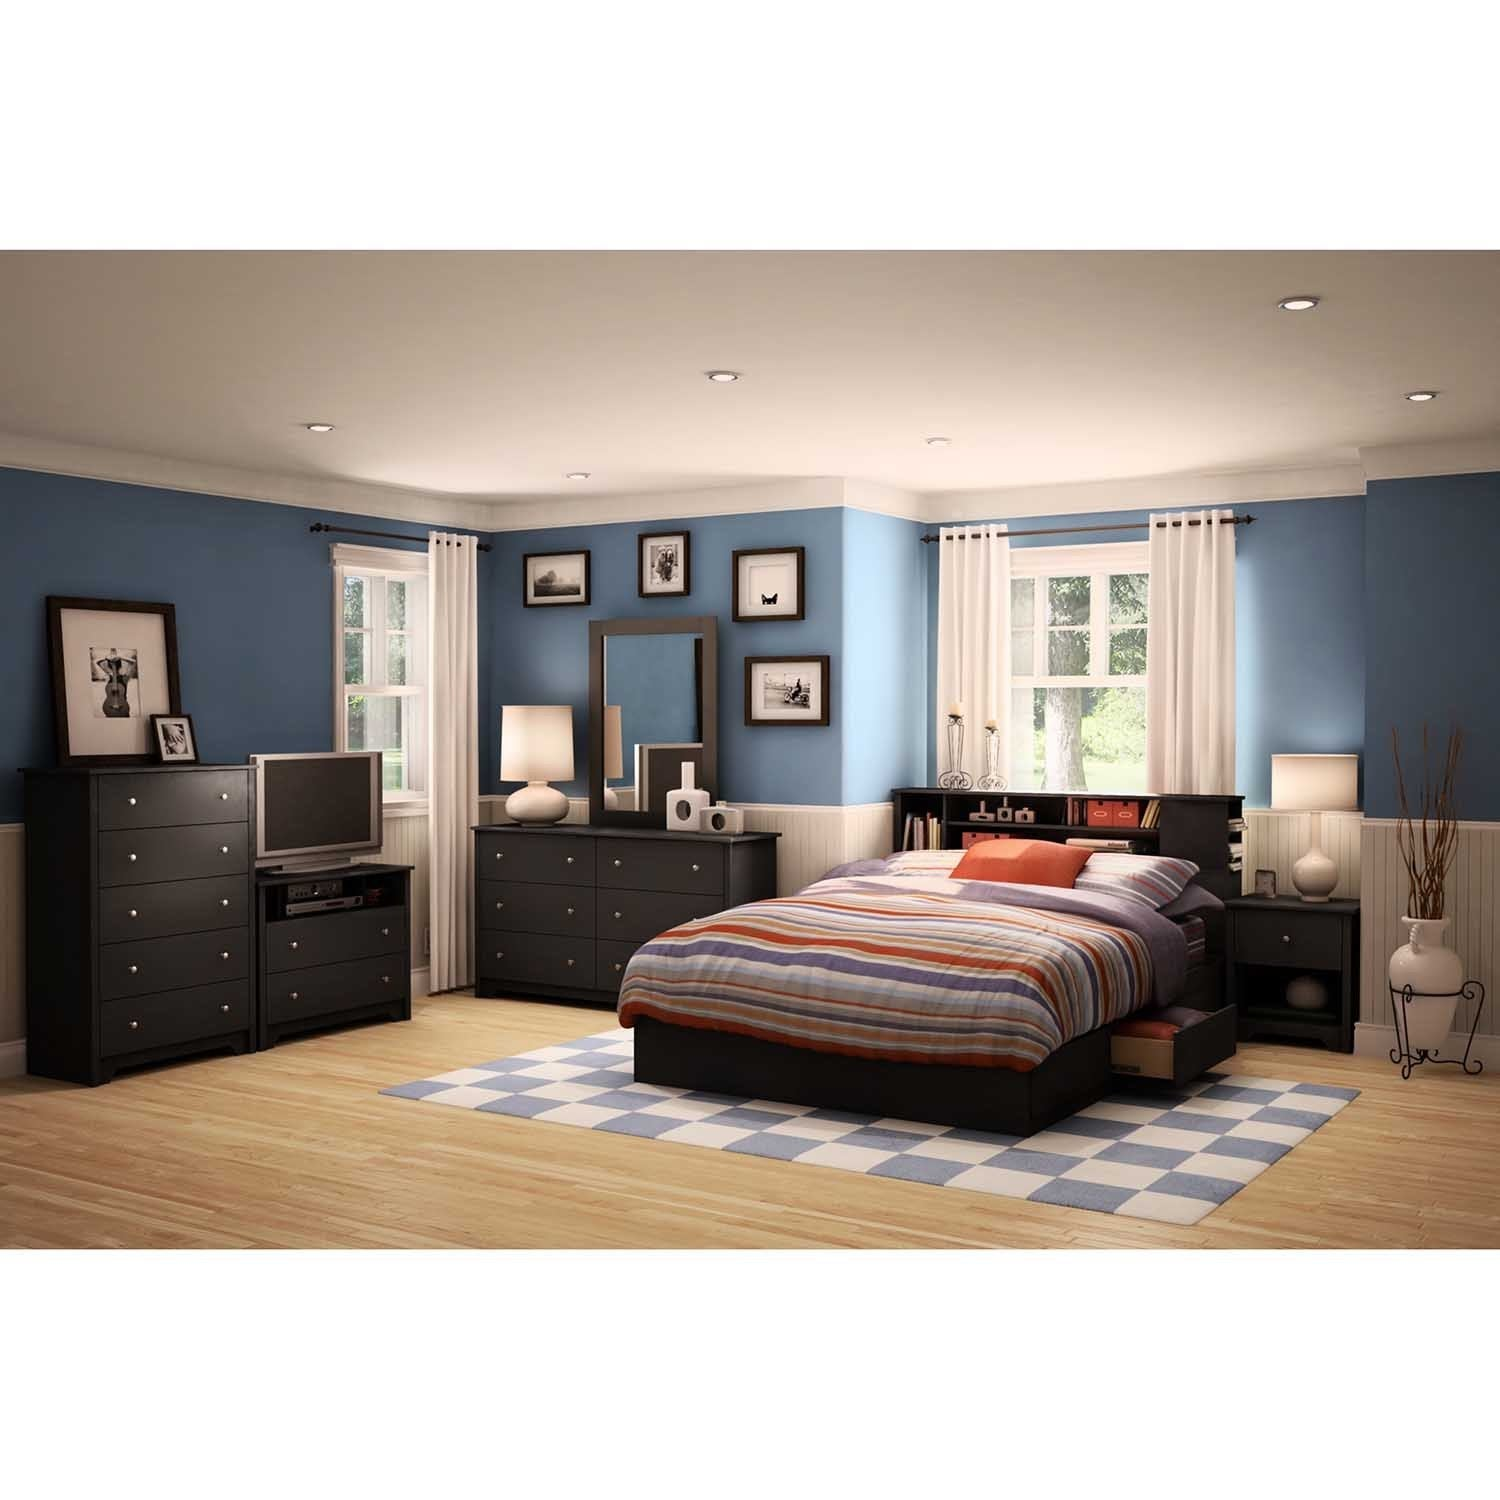 South Shore Vito Queen Mates Bed with Drawers and Bookcase Headboard Set (Vito Queen Bed w/ Headboard in Pure Black)